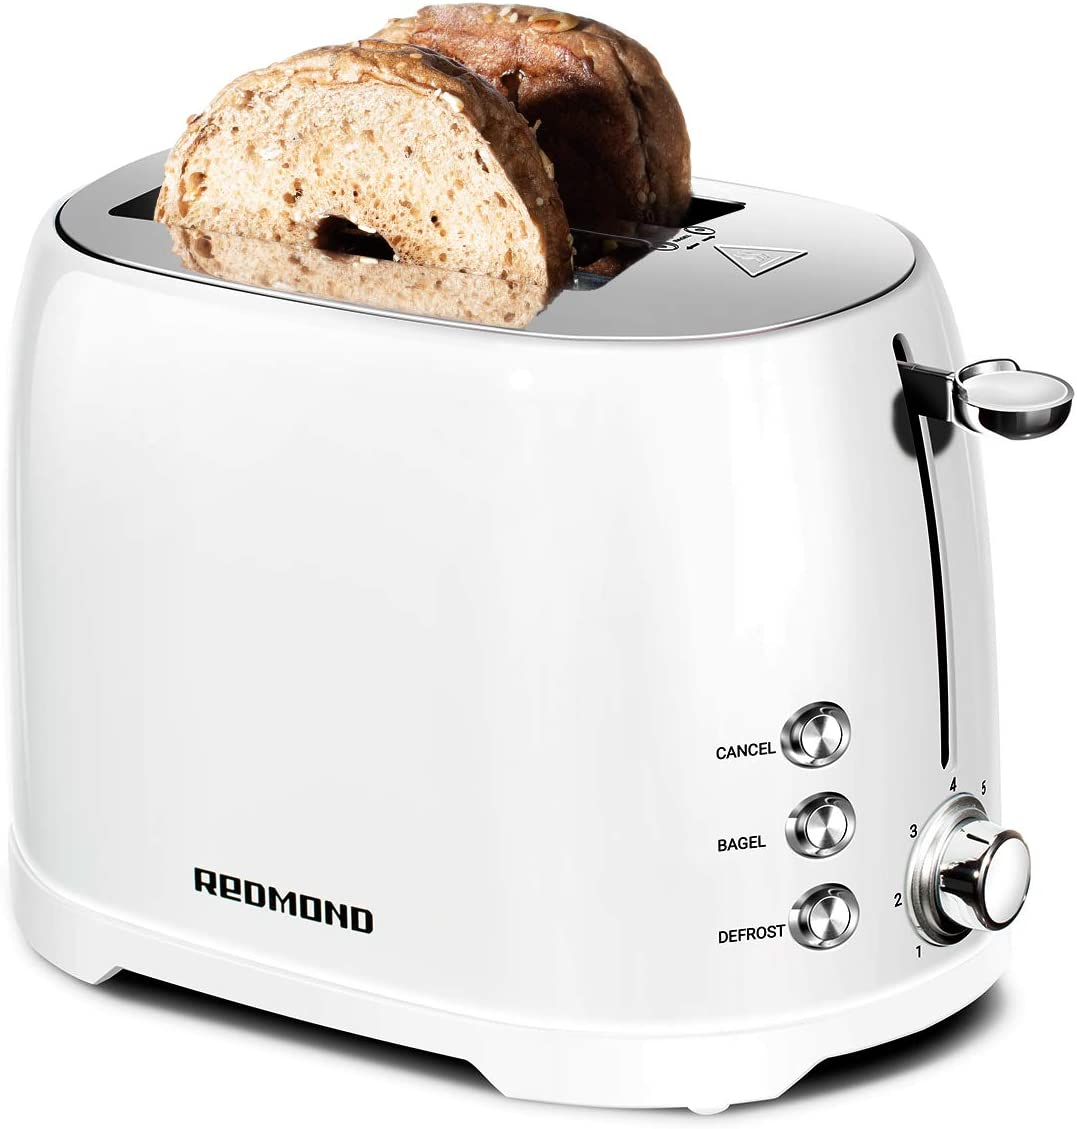 "REDMOND Retro Toaster 2 Slice Stainless Steel Compact Bagel Toaster with 1.5""Extra Wide Slots, 7 Bread Shade Settings, Removable Crumb Tray for Breakfast, 800W (White)"